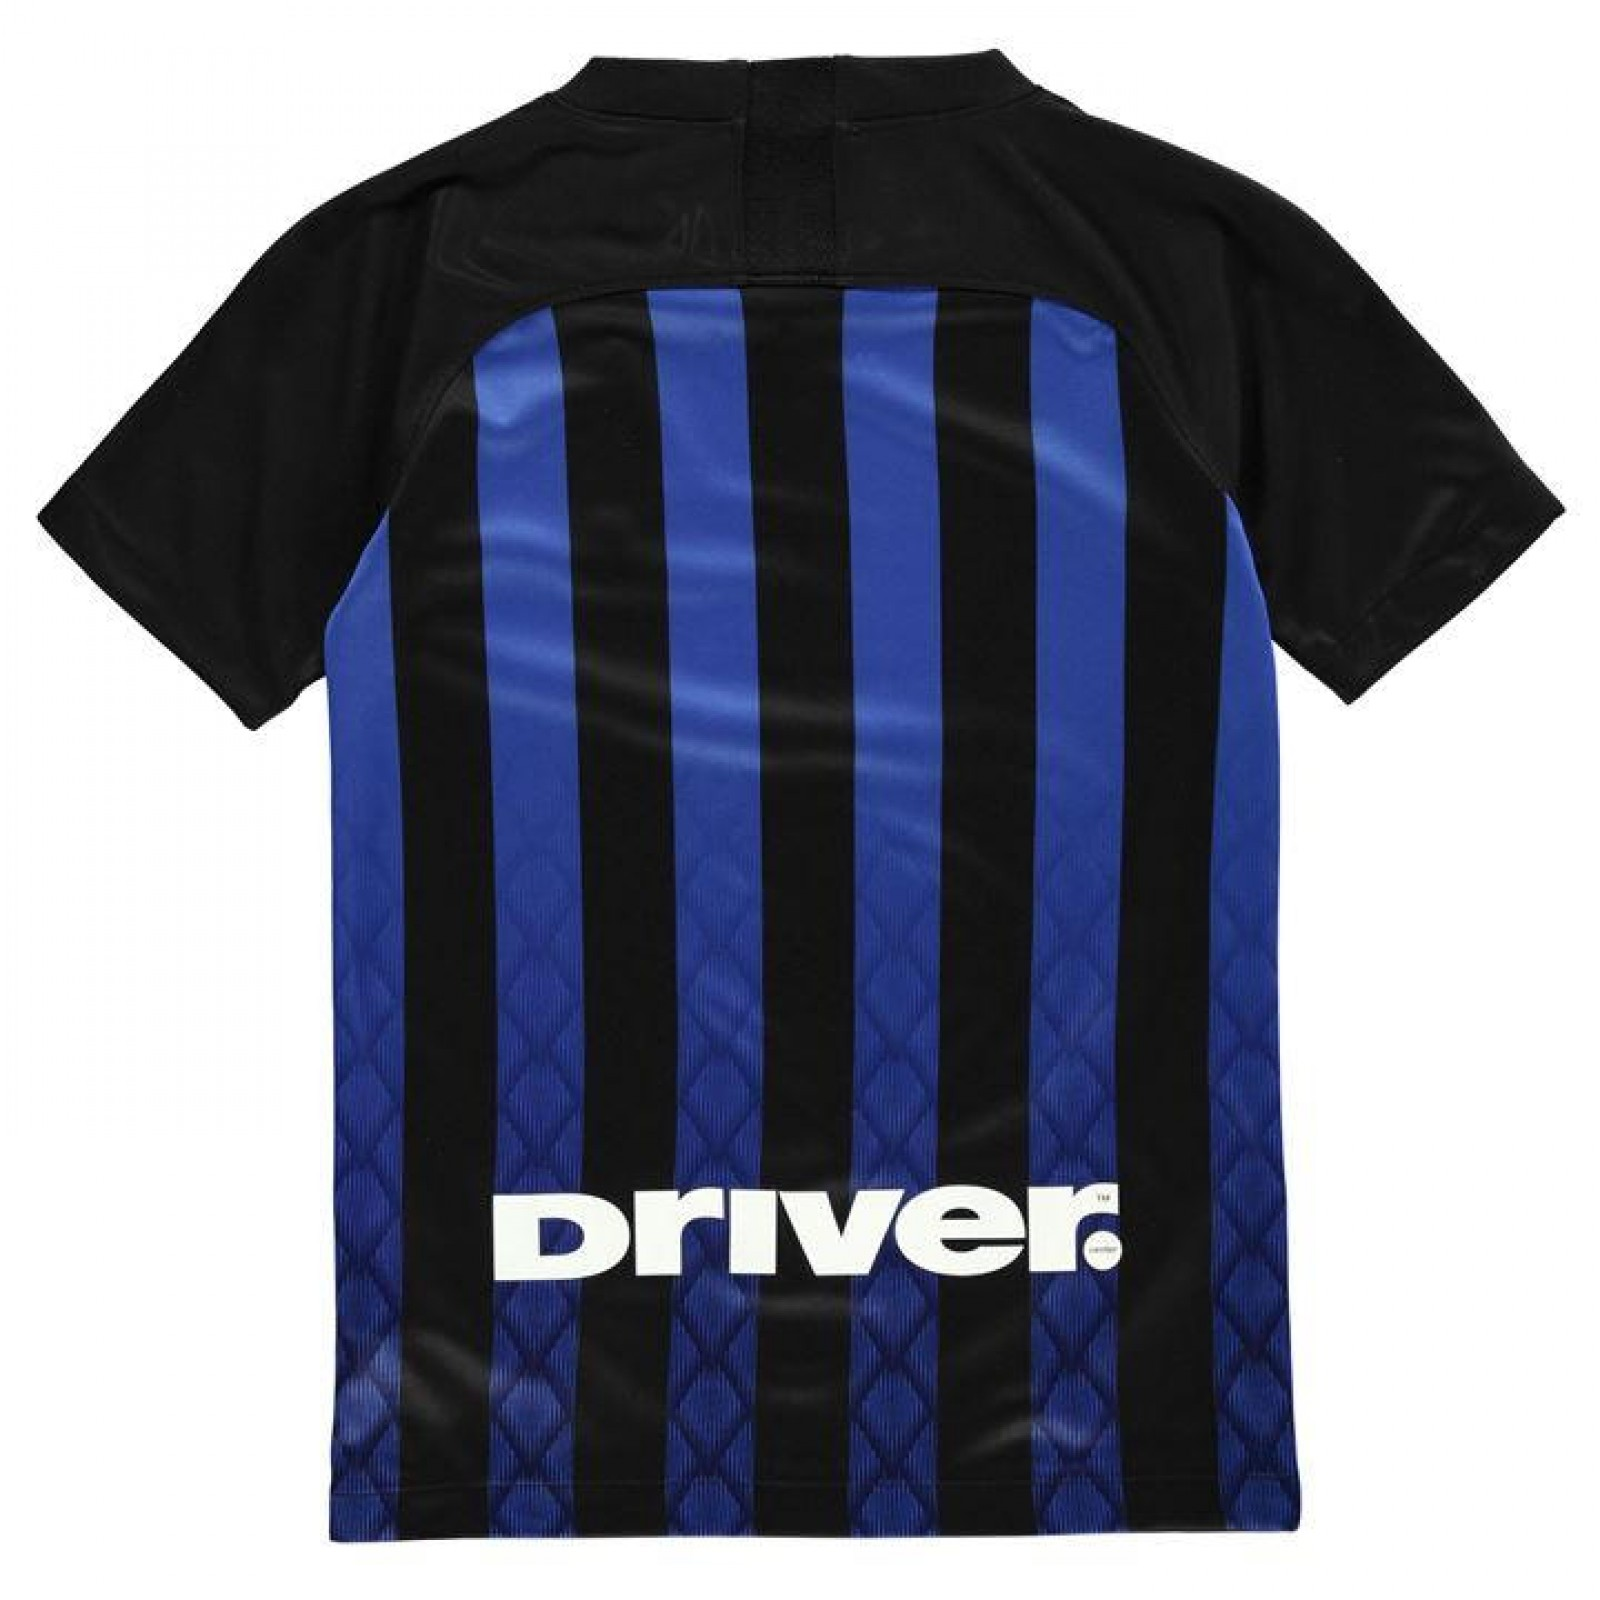 Childrens Inter Milan Home Kit 2018 19 From 31 99 Free Shirt Printing Totalsports